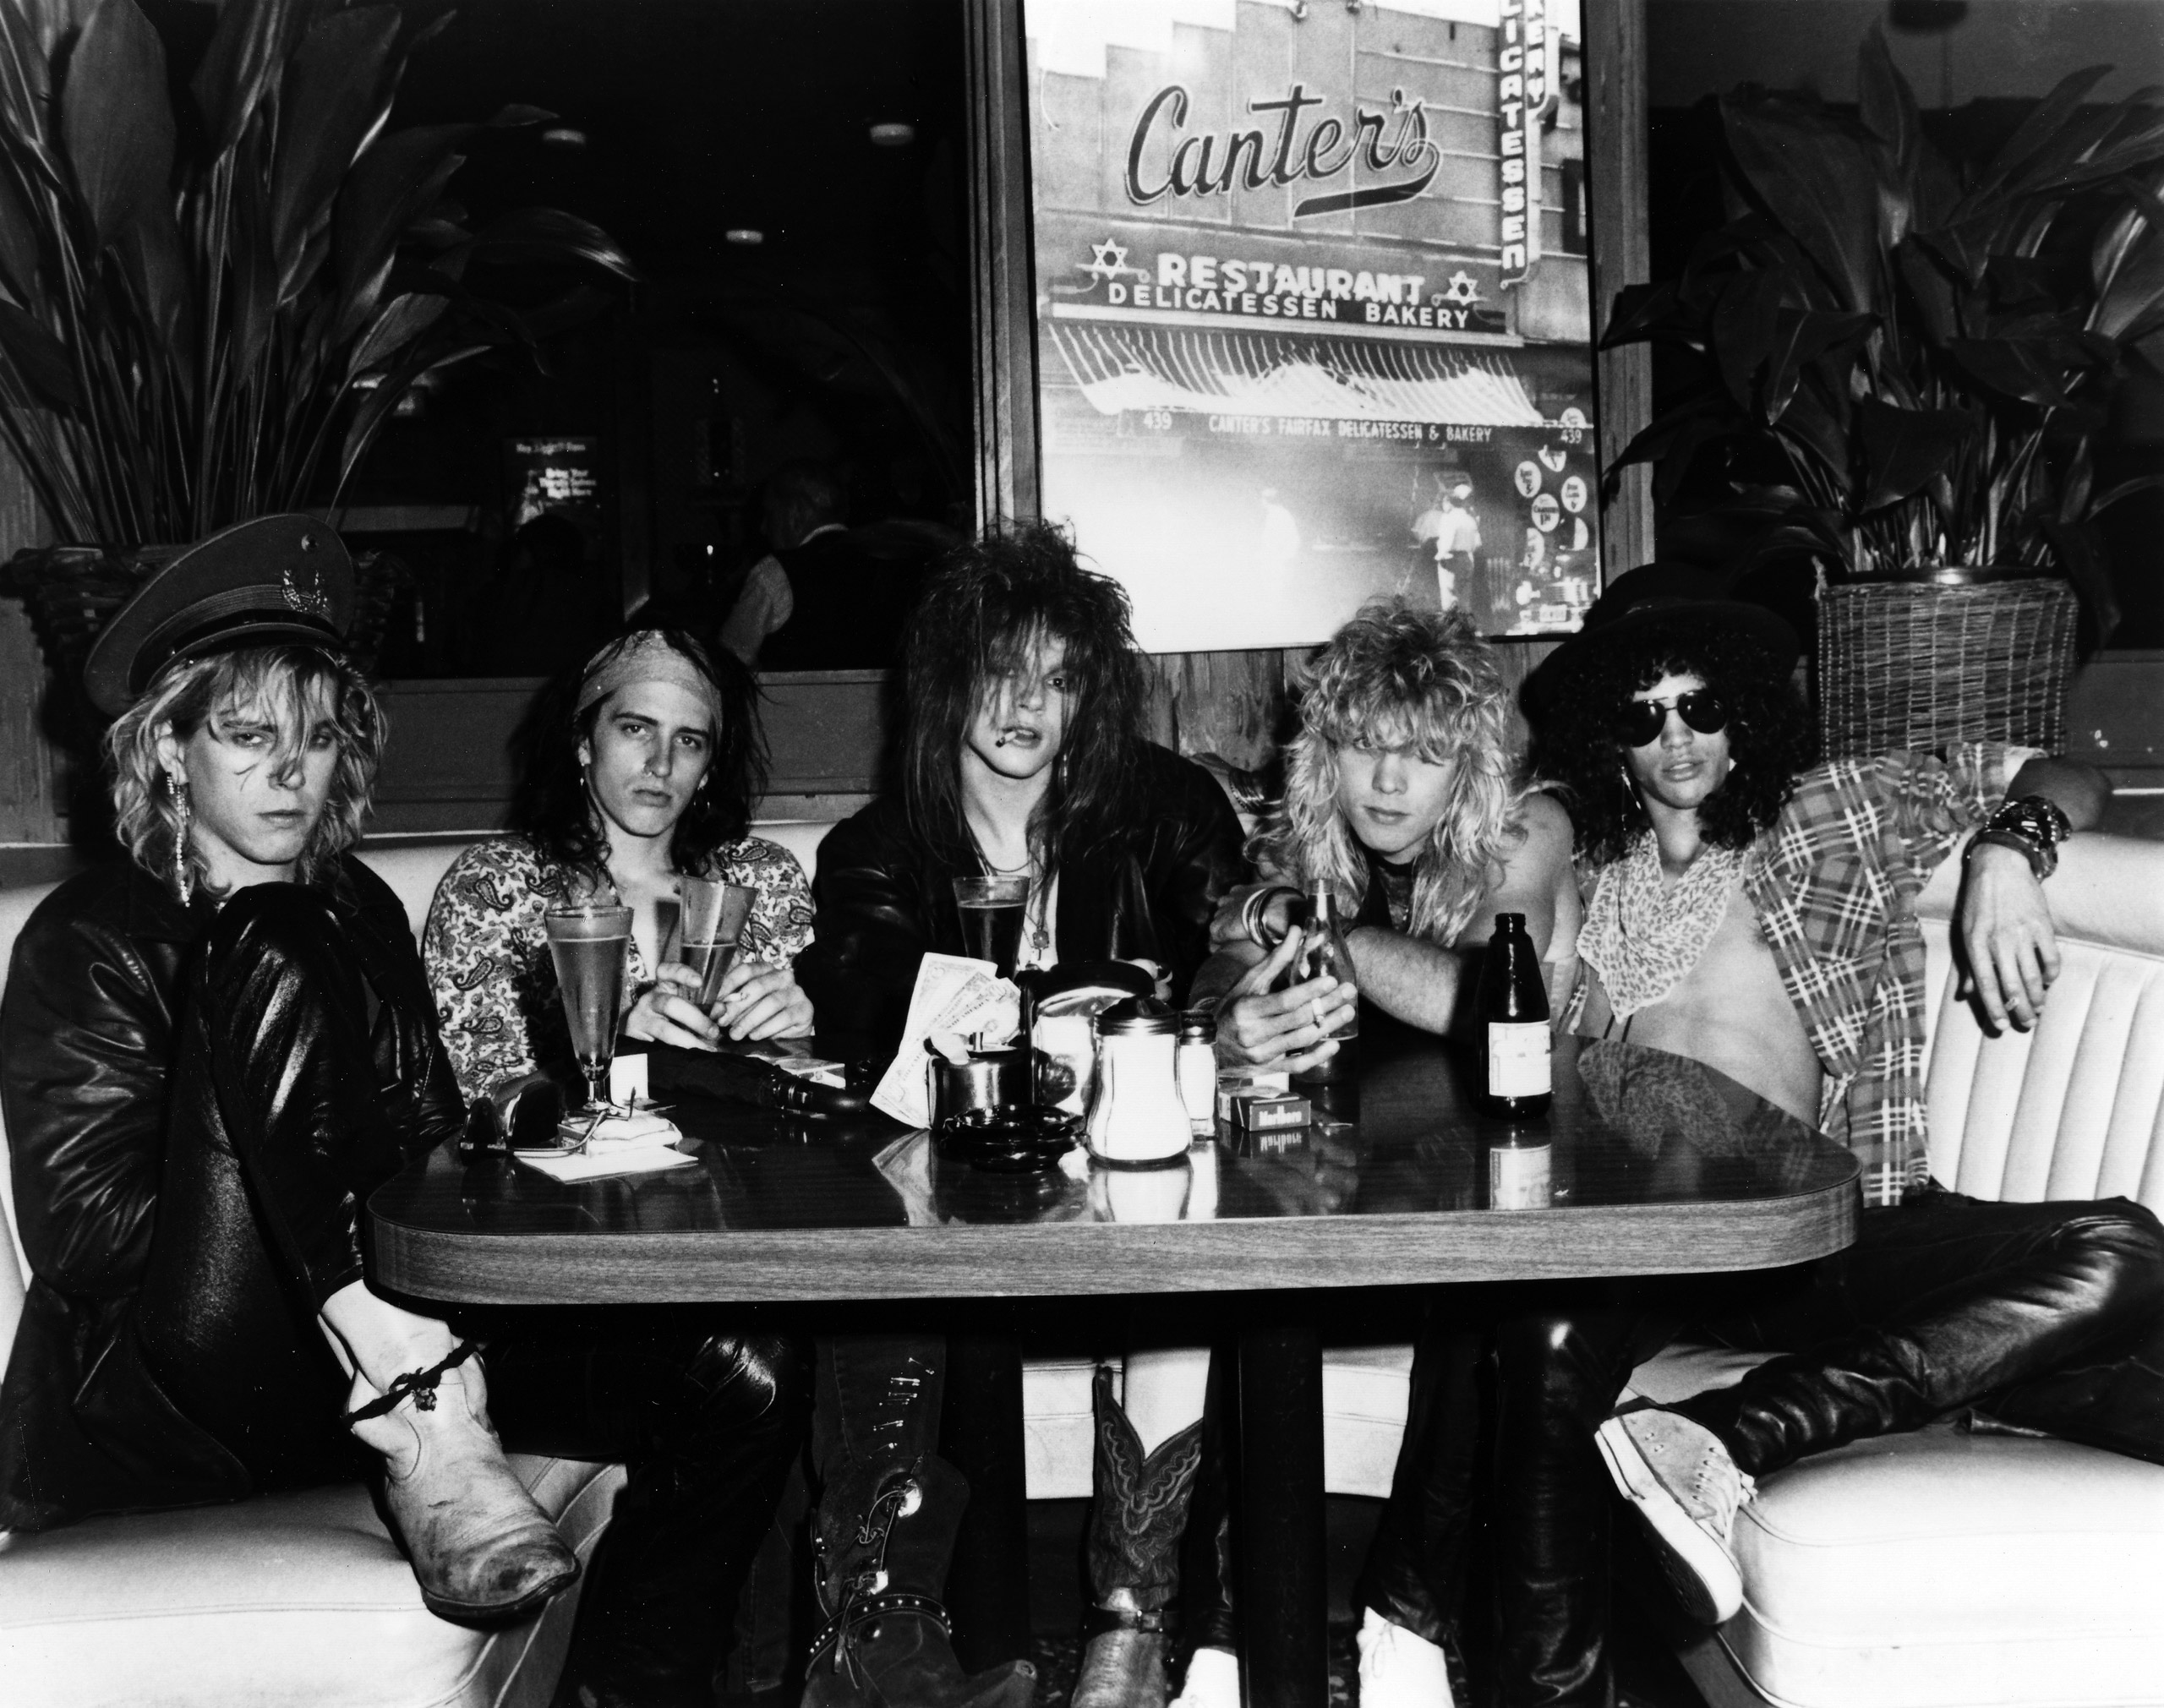 Duff McKagan, Izzy Stradlin, Axl Rose, Steven Adler and Slash of Guns n' Roses pose for a portrait in a booth at Canter's Deli adjacent to the Kibitz Room bar in June 1985 in Los Angeles.